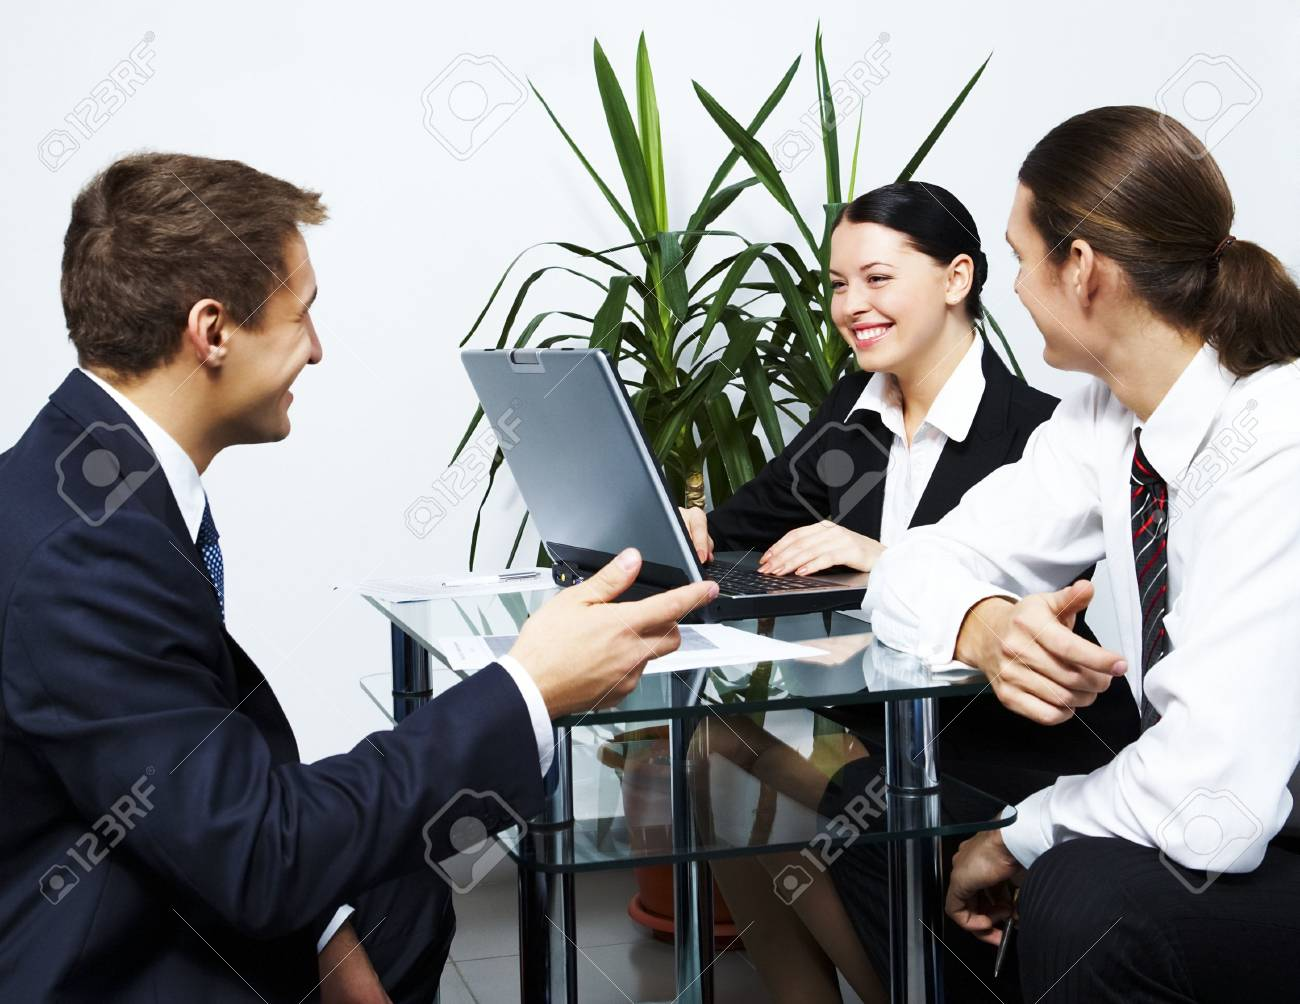 Photo of co-workers looking at each other with smiles while working Stock Photo - 6226571